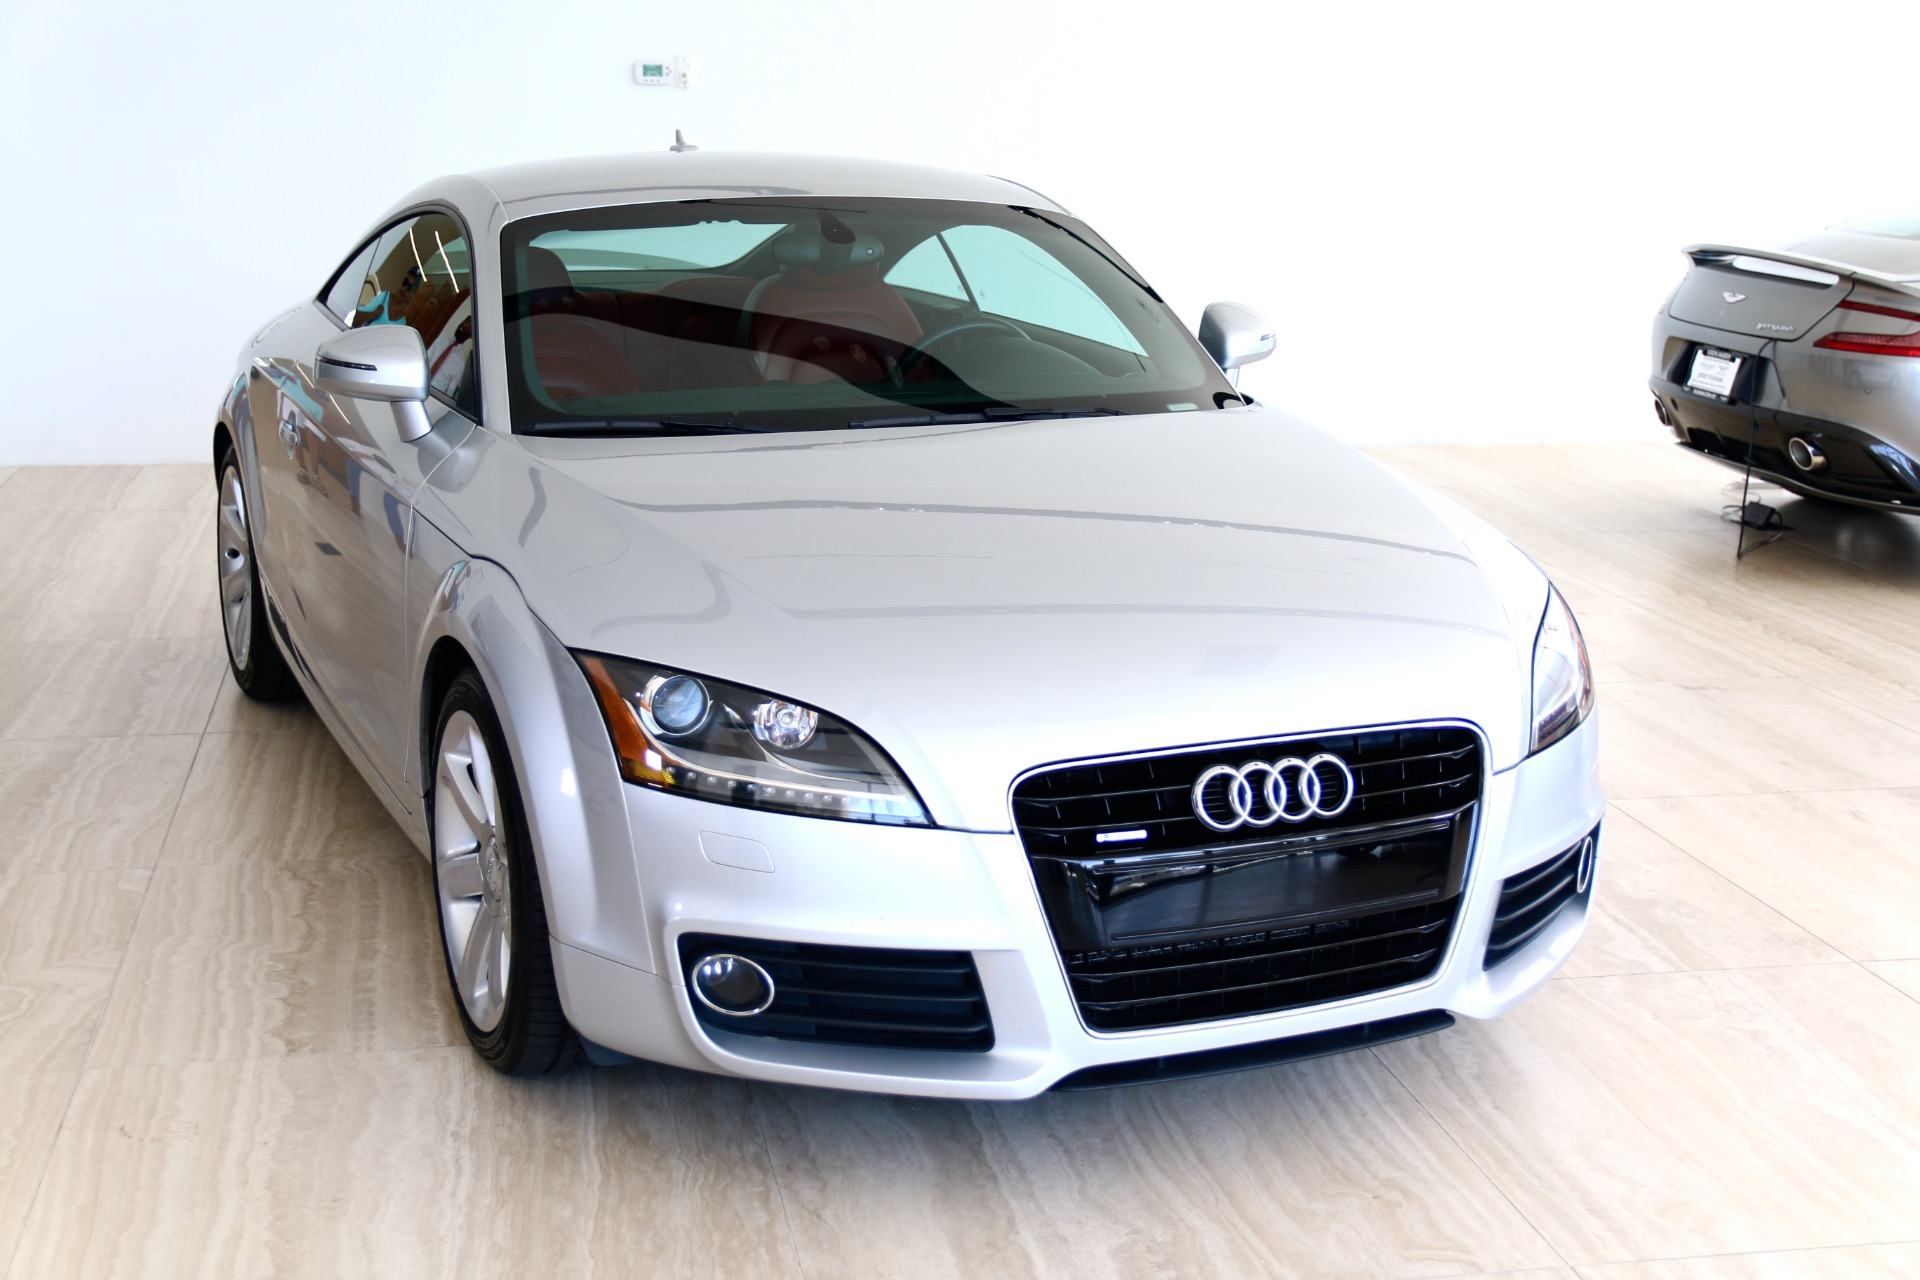 va in c dealers used vienna audi sale stock for quattro near l htm